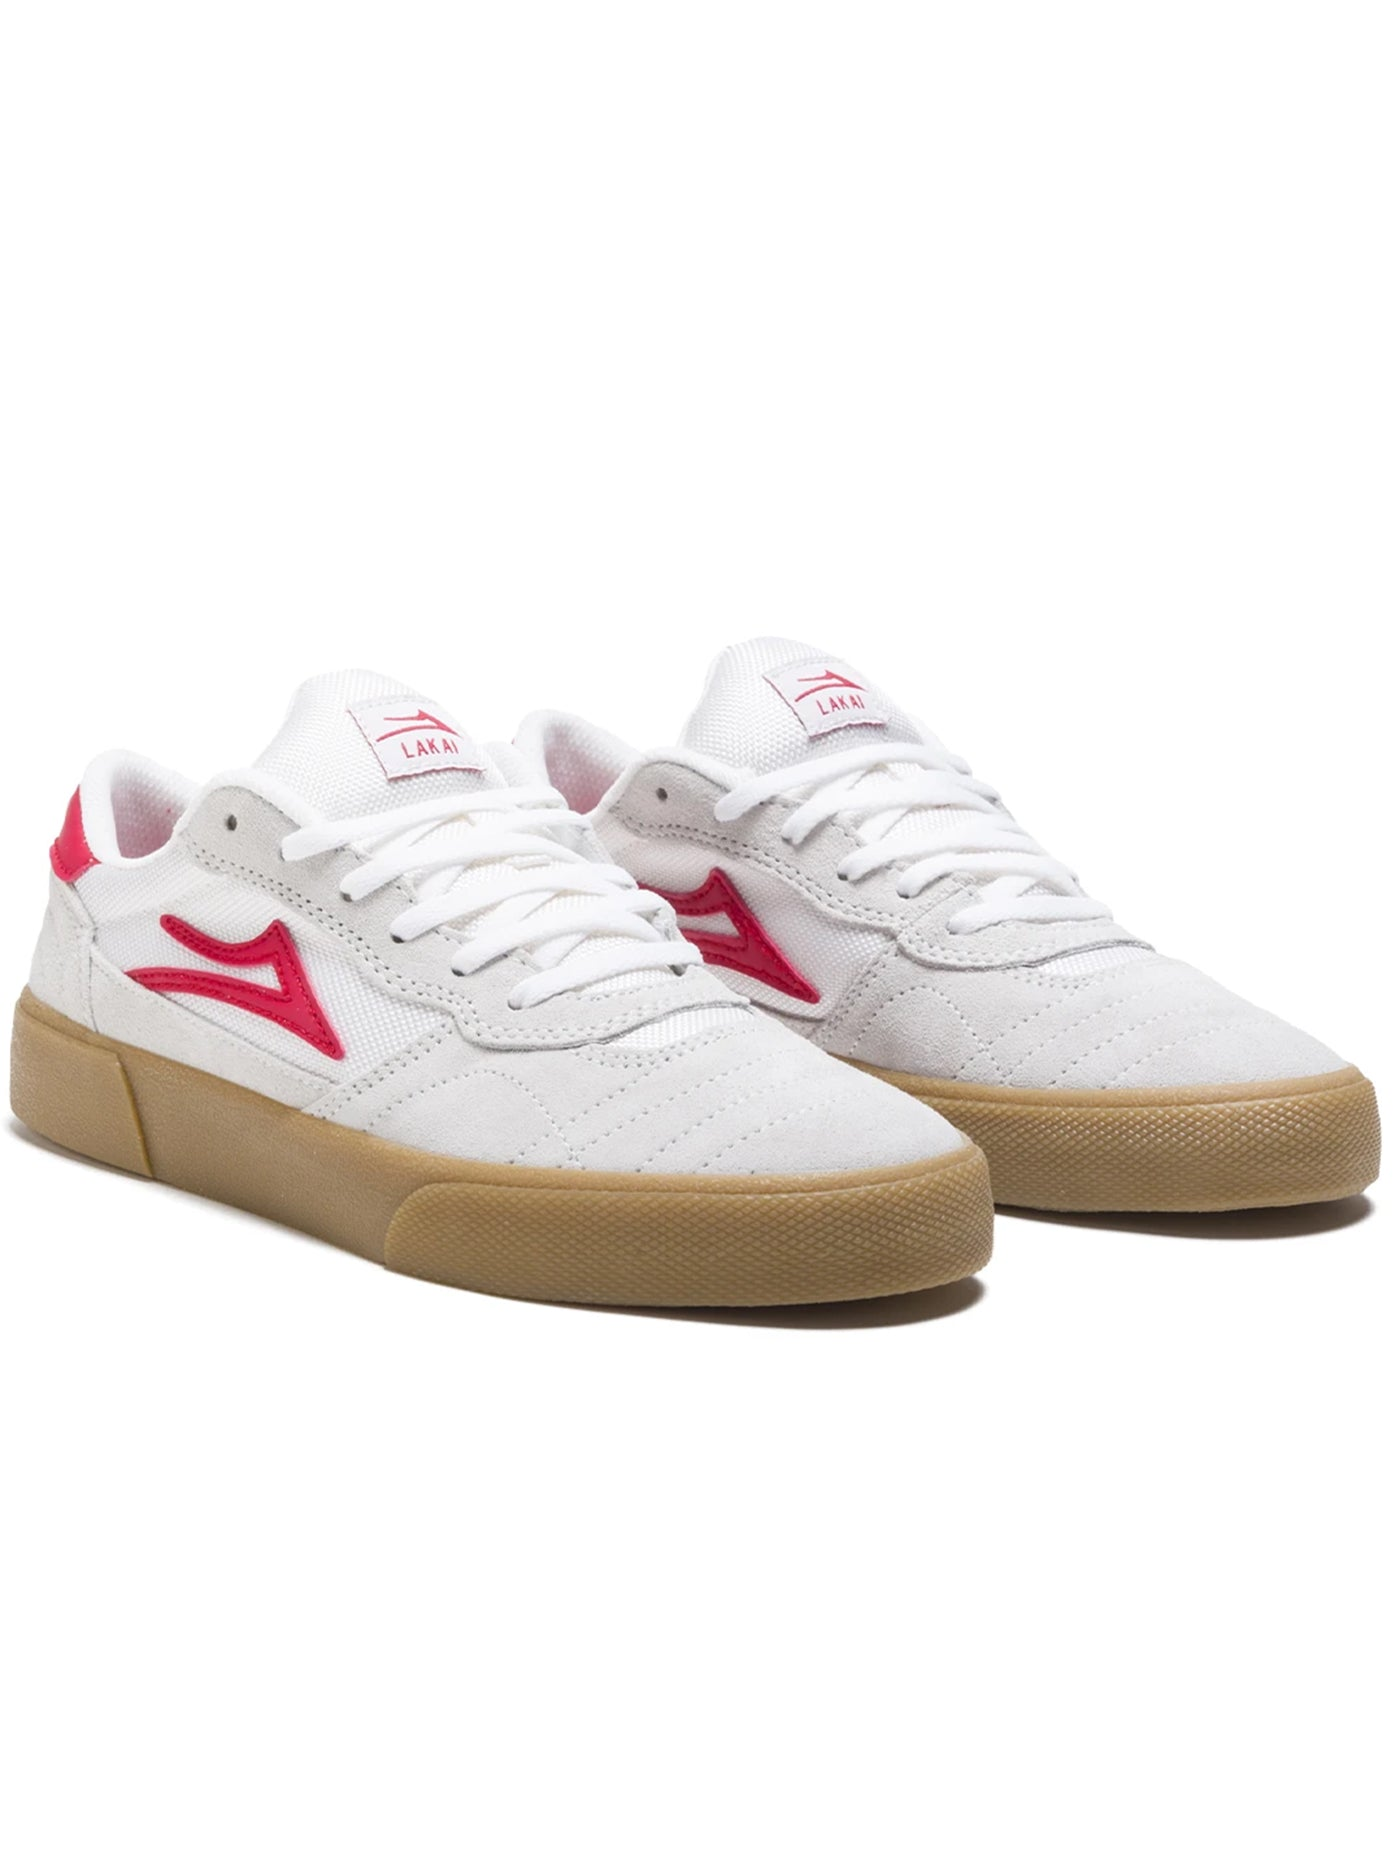 WHITE/RED SUEDE (WRS)